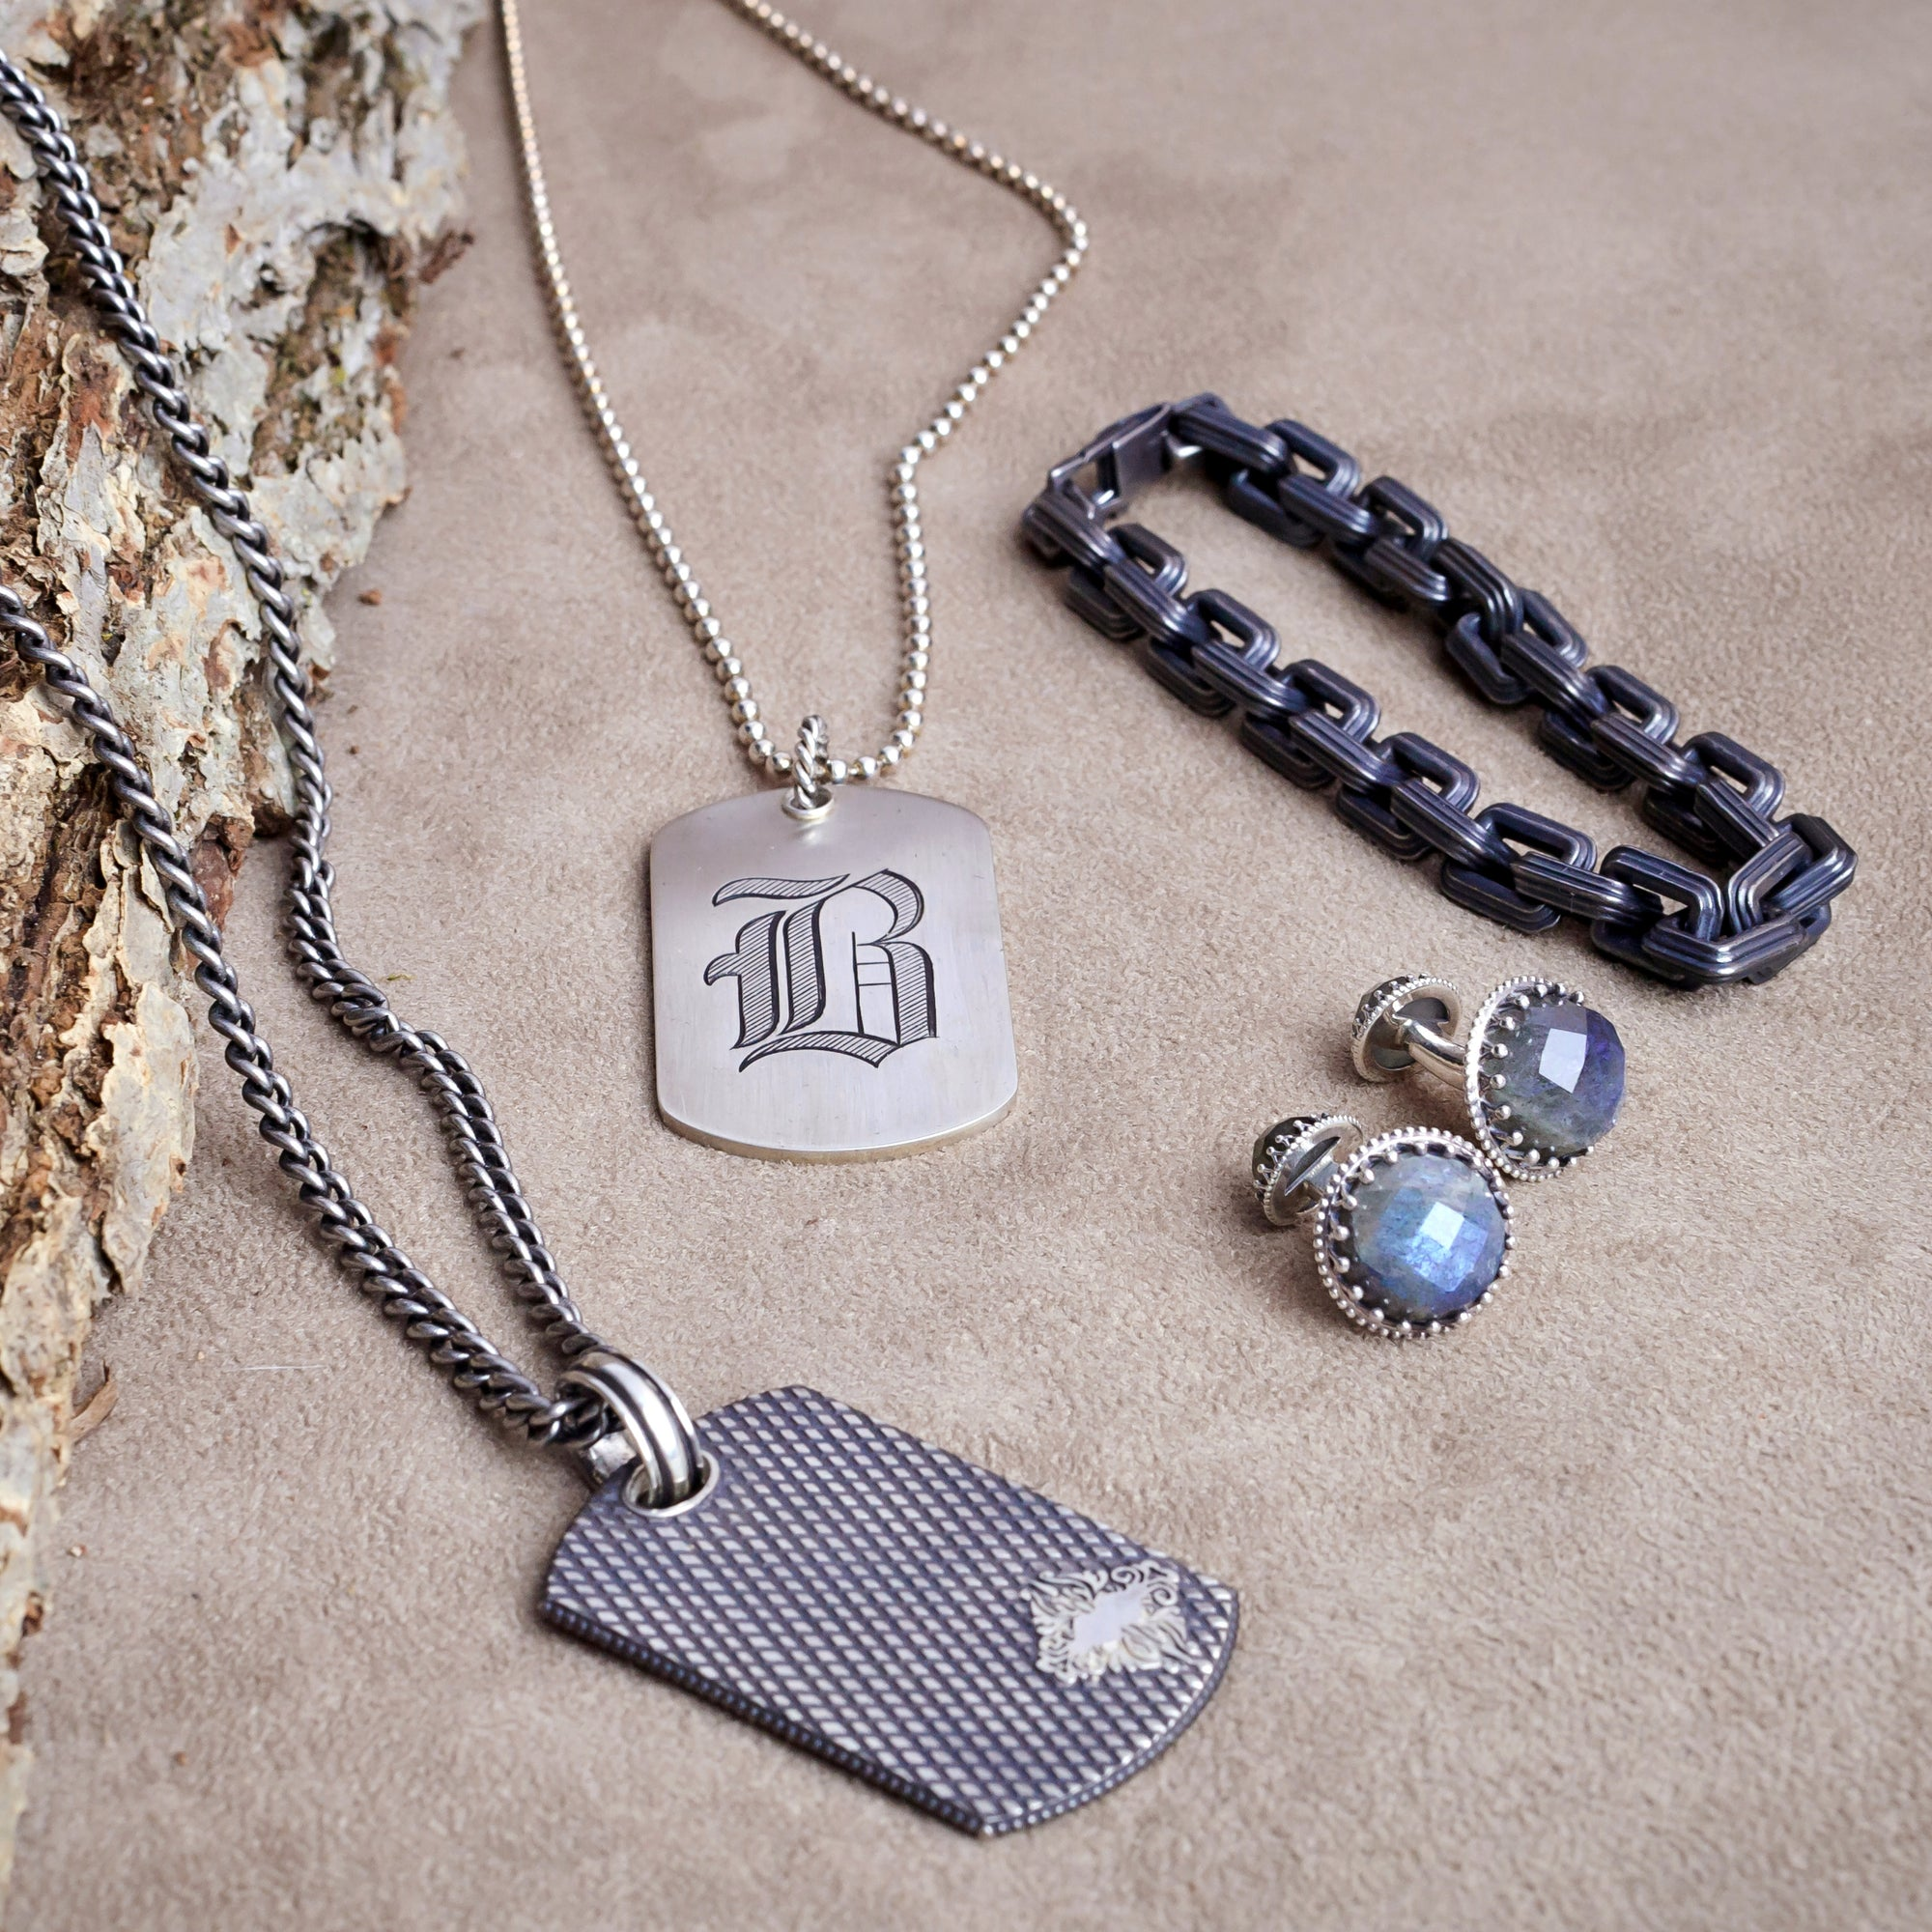 Scott Mikolay Patterned Dog Tag Necklace Desires by Mikolay